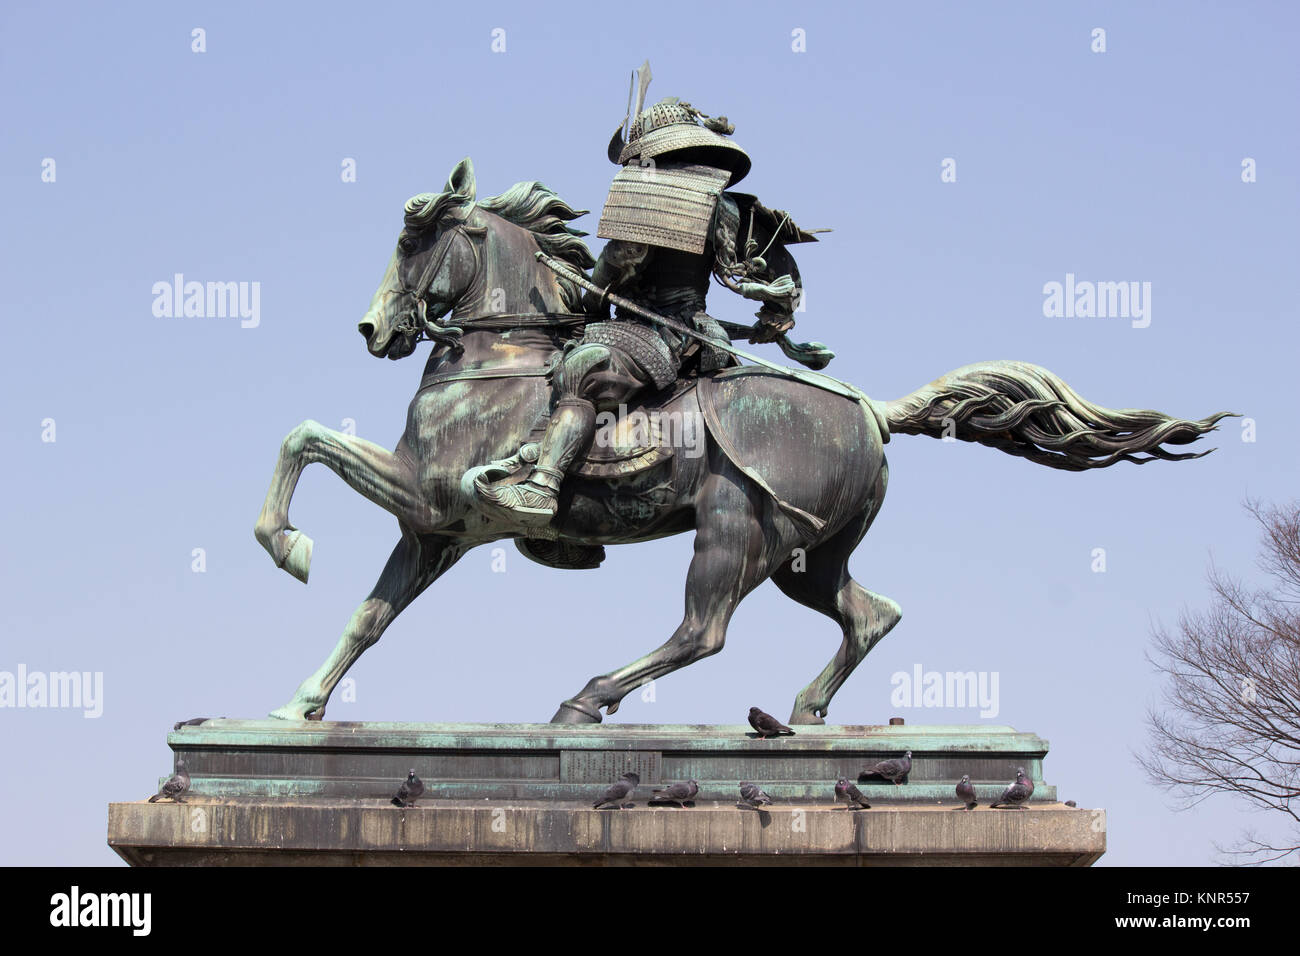 The statue of Kusunoki Masashige in Kokyogaien Park near the Imperial Palace, Tokyo - Stock Image